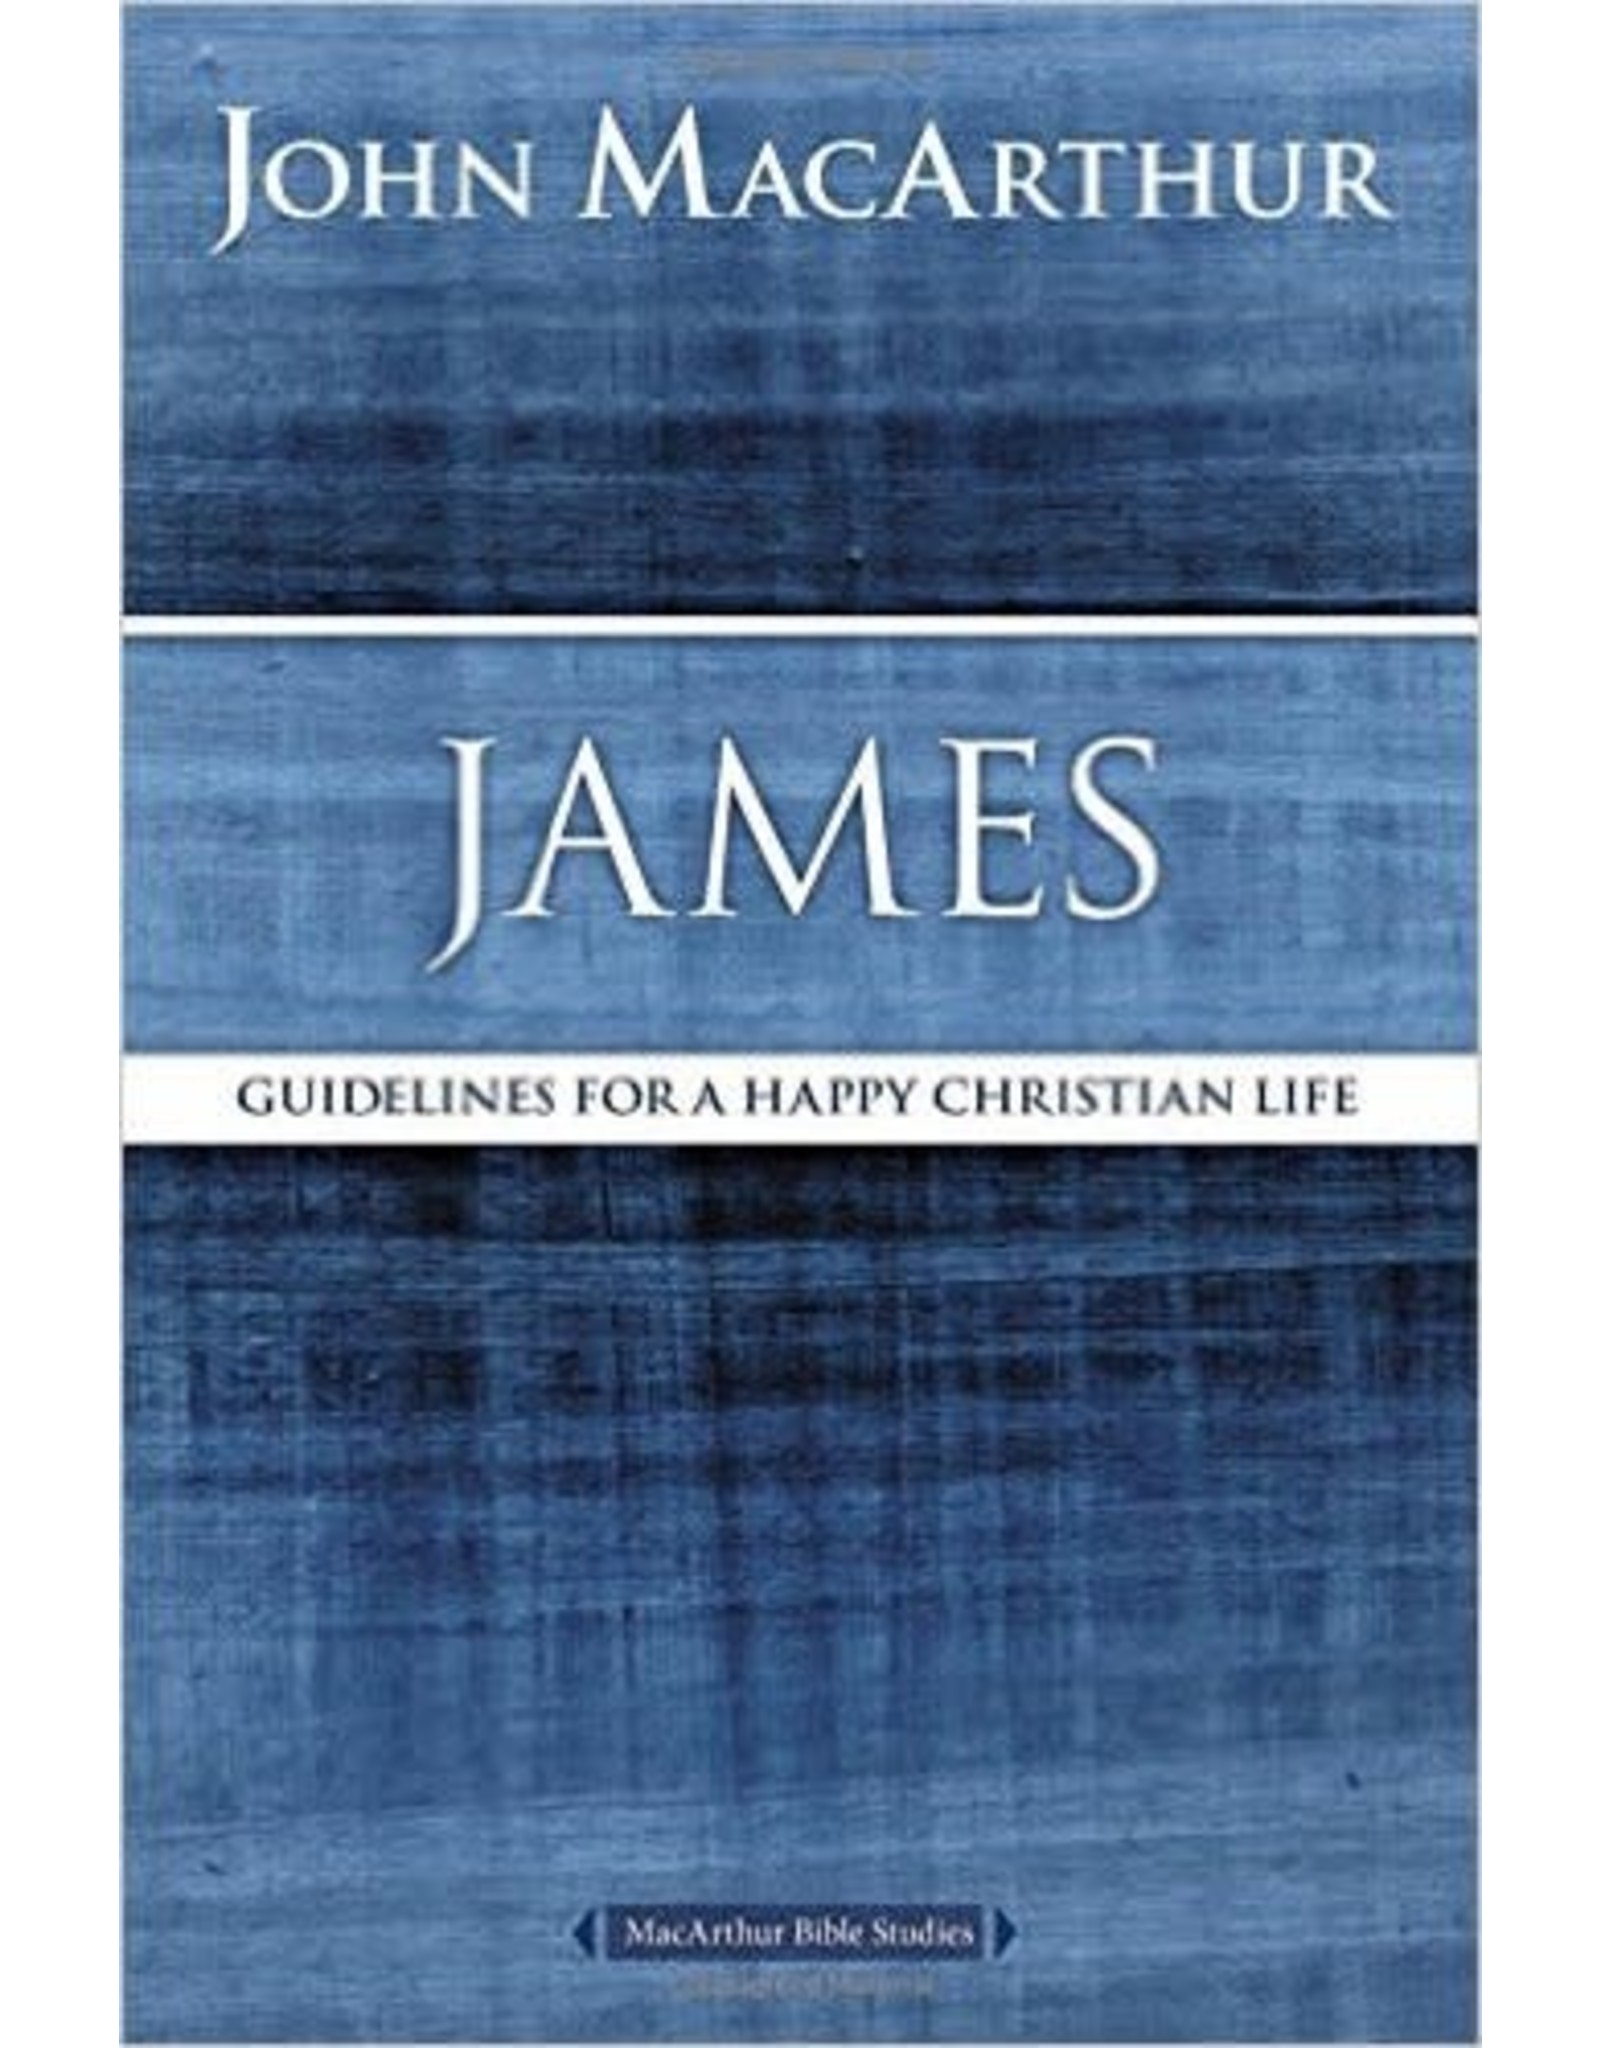 Harper Collins / Thomas Nelson / Zondervan MacArthur Bible Study (MBS) James: Guidelines for a Happy Christian Life